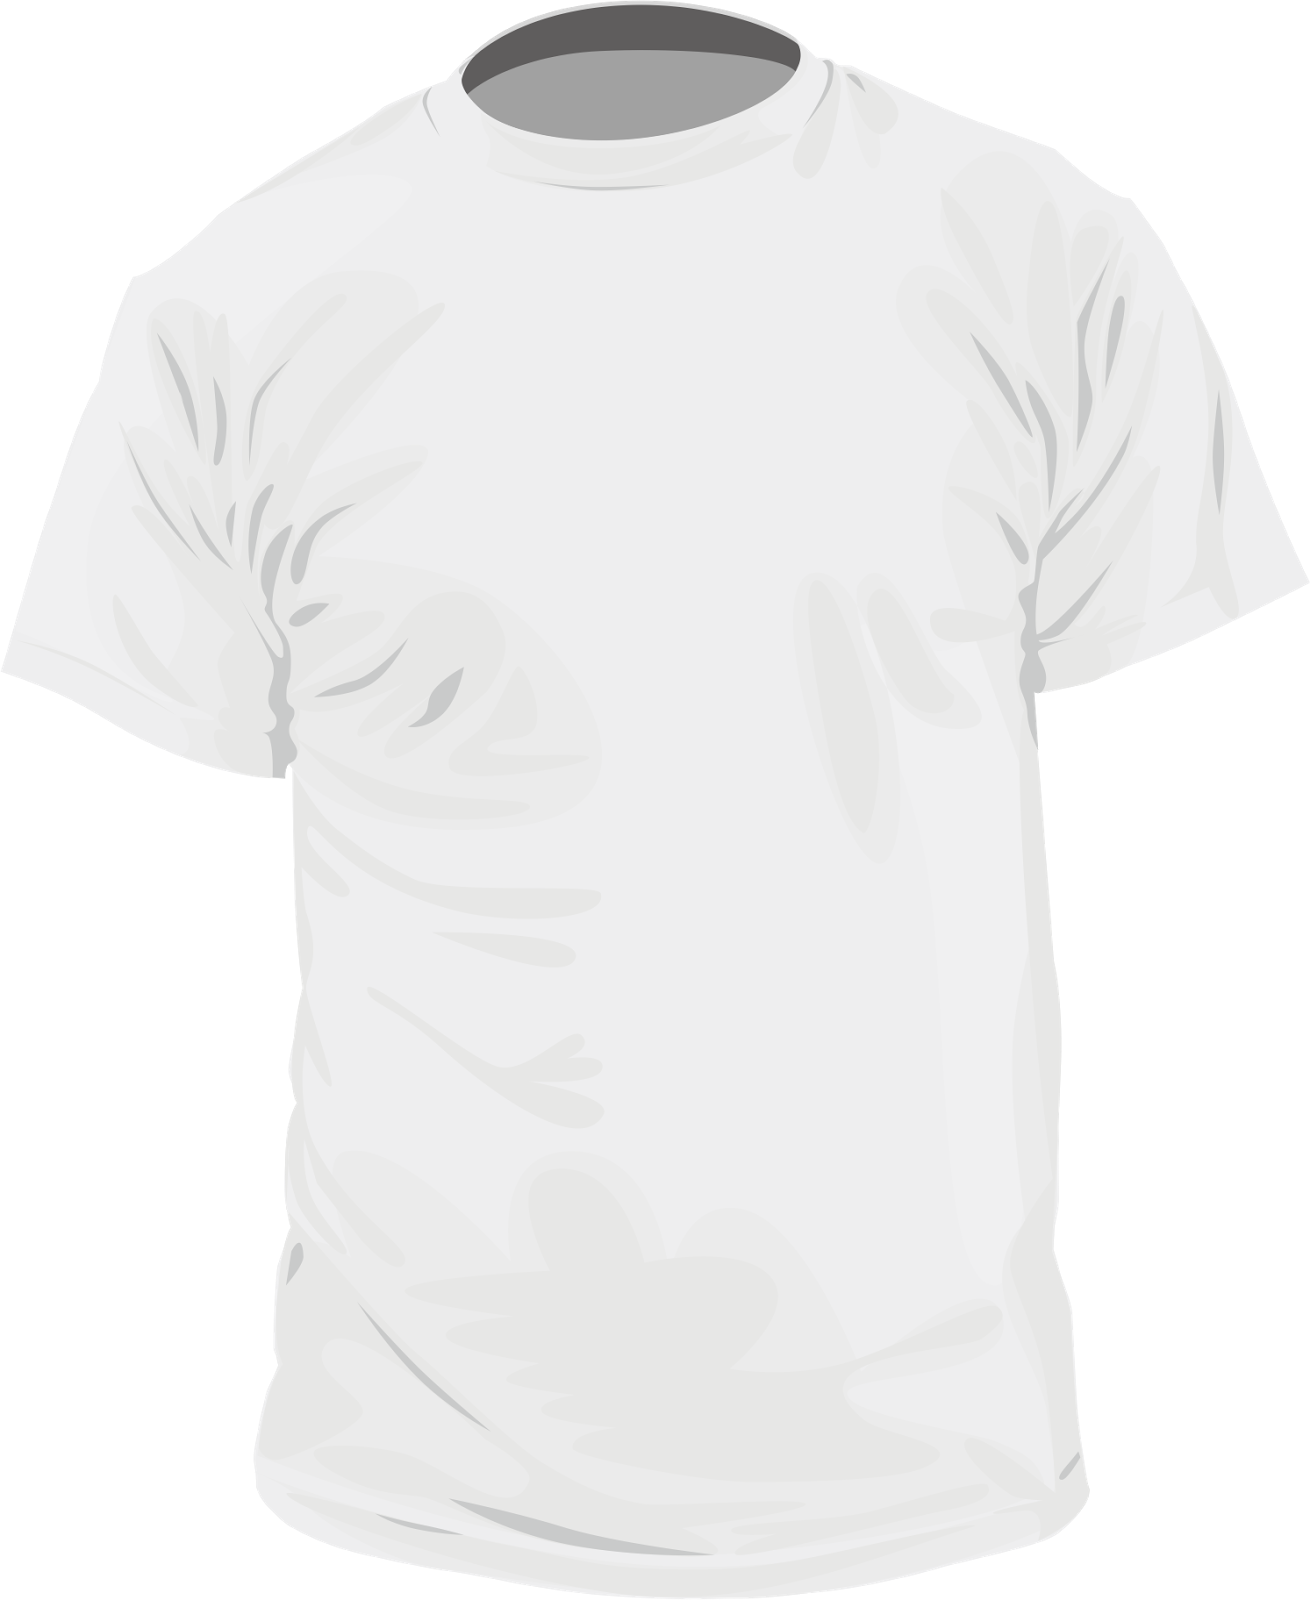 Logo Template T Shirt 1310 X 1600 9 0